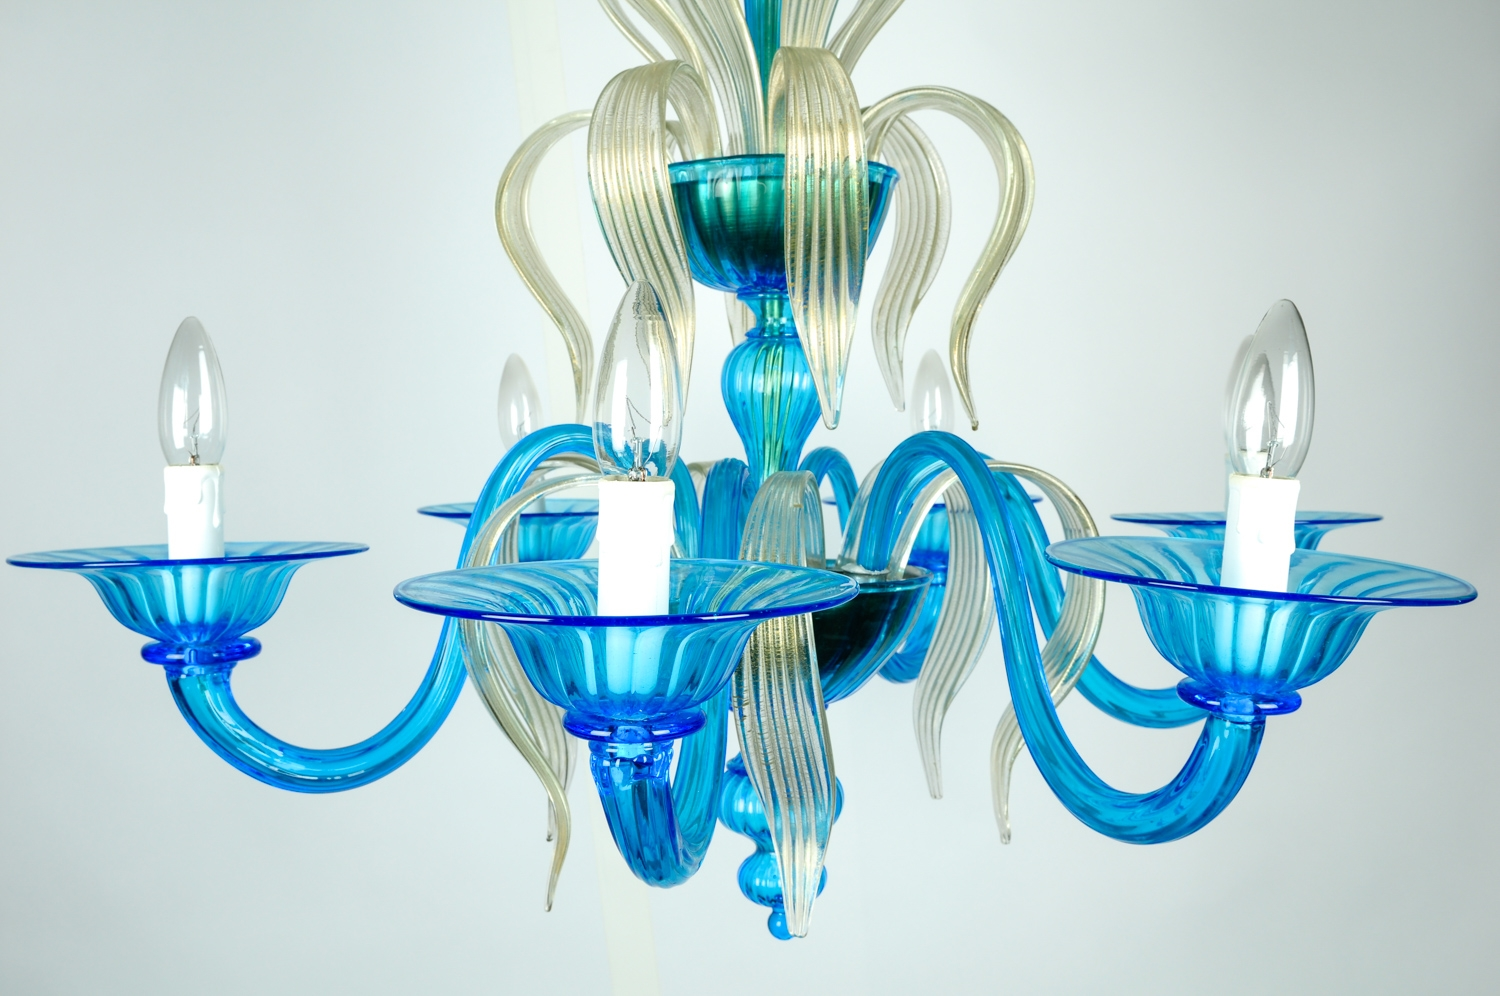 Venetian Handblown Six Arms Turquoise With Gold Flecks Chandelier Pertaining To Turquoise And Gold Chandeliers (Image 12 of 13)